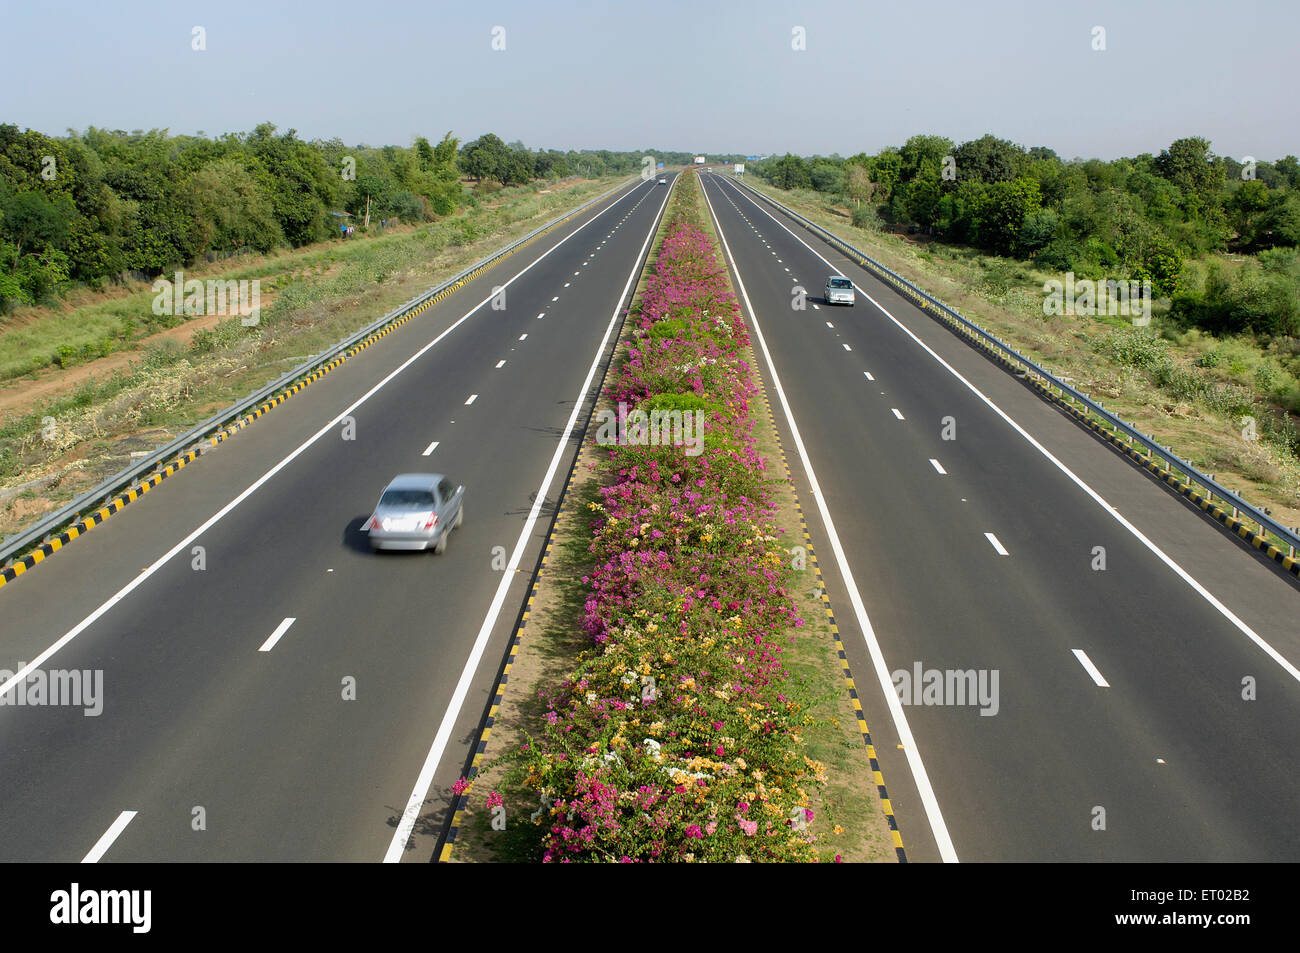 Ahmedabad Vadodara Expressway with flowers bed National Highways Authority of India Gujarat India - Stock Image